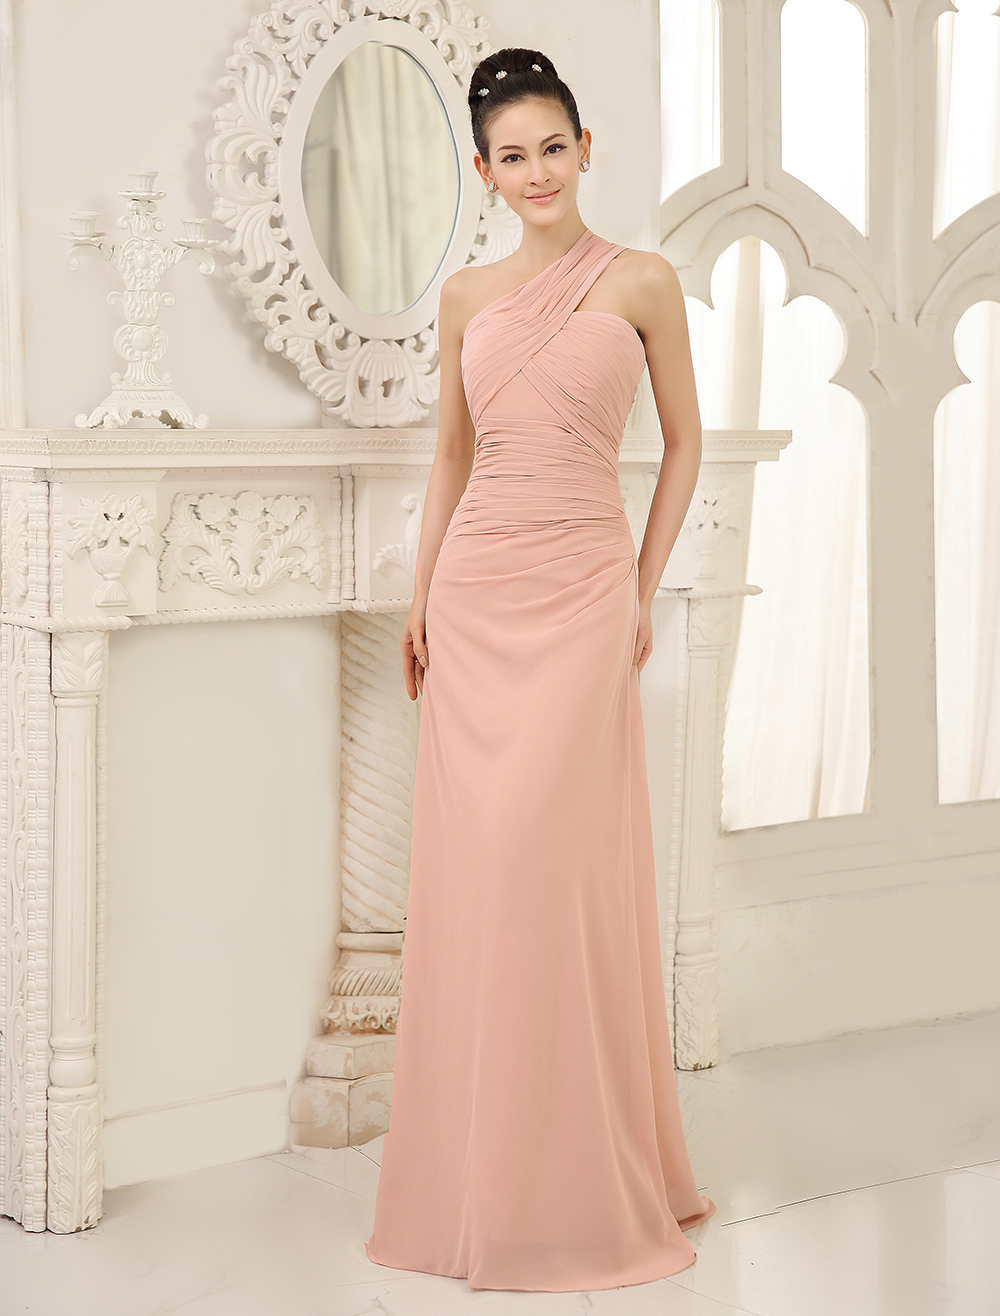 Buy One Shoulder Bridesmaid Dresses Blush Pink Long Ruched Sleeveless Wedding Party Dress for $105.99 in Milanoo store